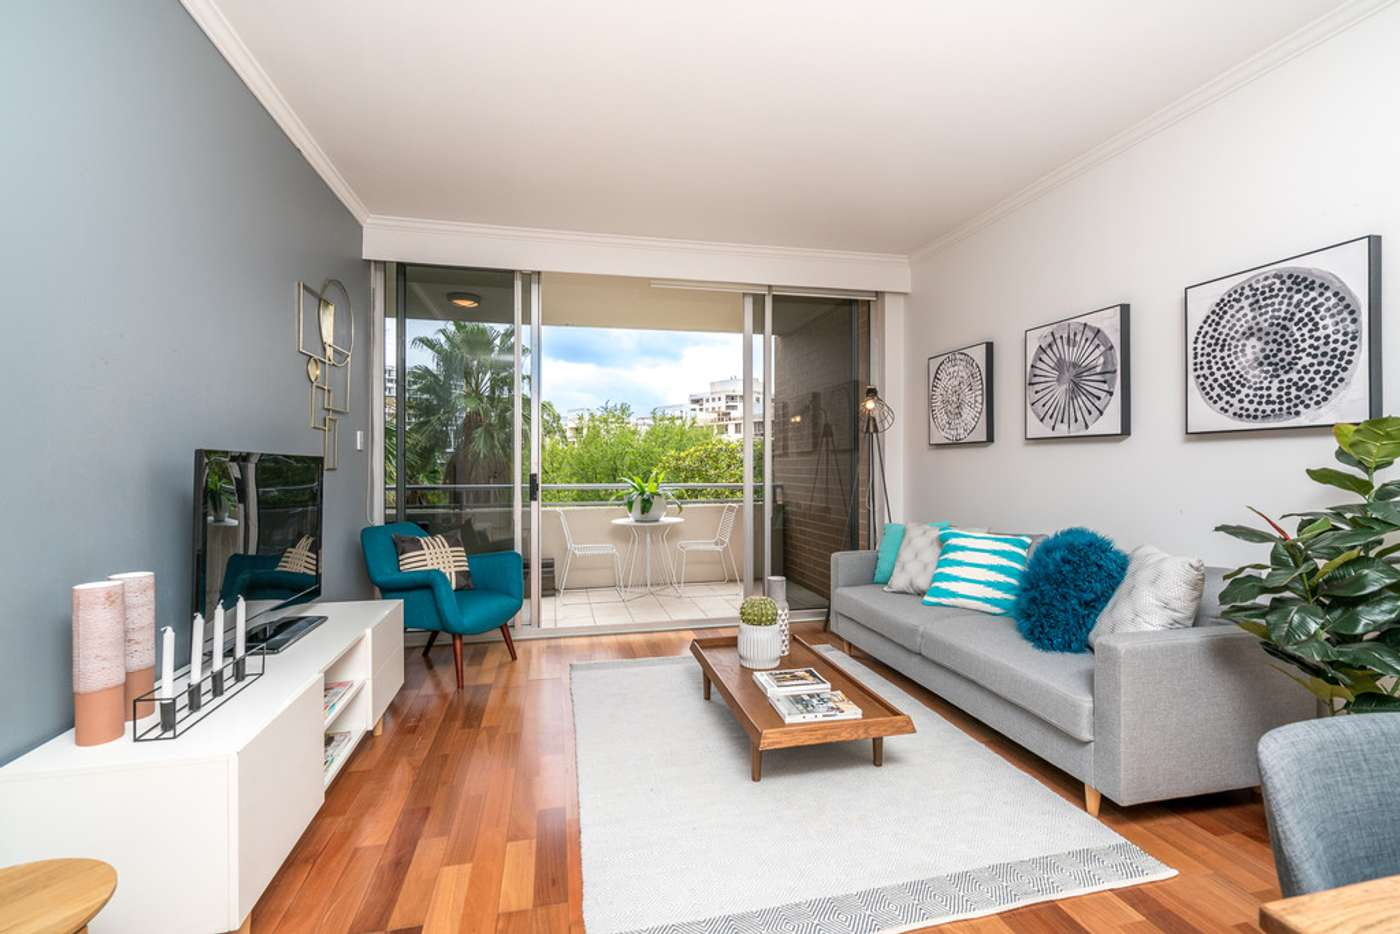 Main view of Homely apartment listing, 105/804 Bourke Street, Waterloo NSW 2017